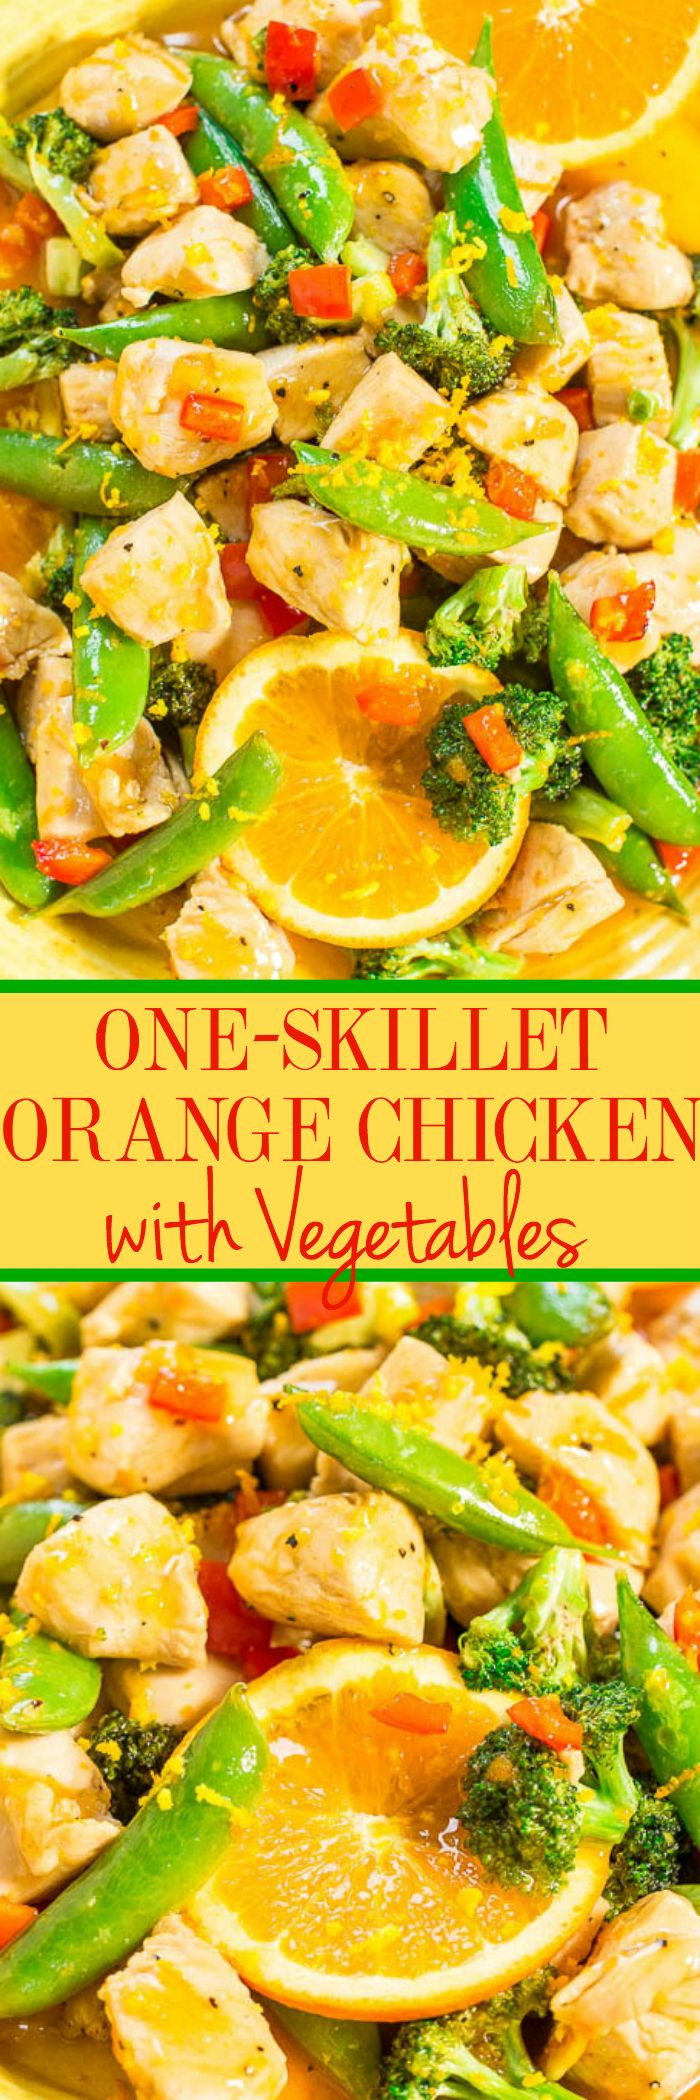 One-Skillet Orange Chicken with Vegetables - Easy, ready in 15 minutes, healthy (no breading, no frying), and the orange flavor just POPS!! Perfect for busy weeknights or casual entertaining and you'll make this over and over!!